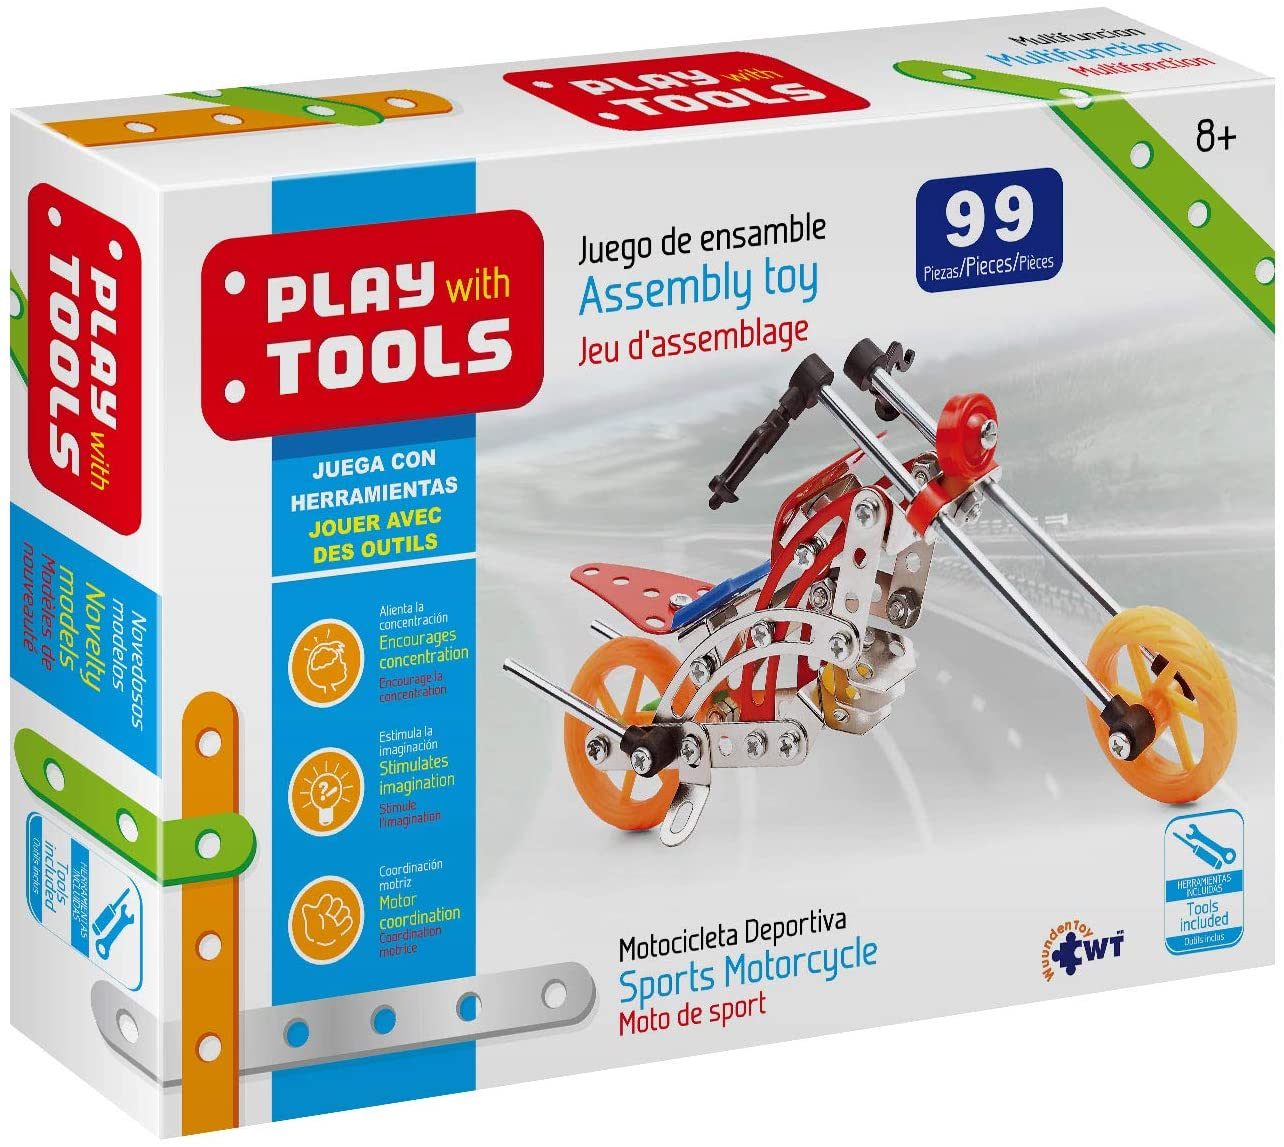 Wuundentoy Erector Set Sports Motorcycle Play with Tools Metal Building Sets